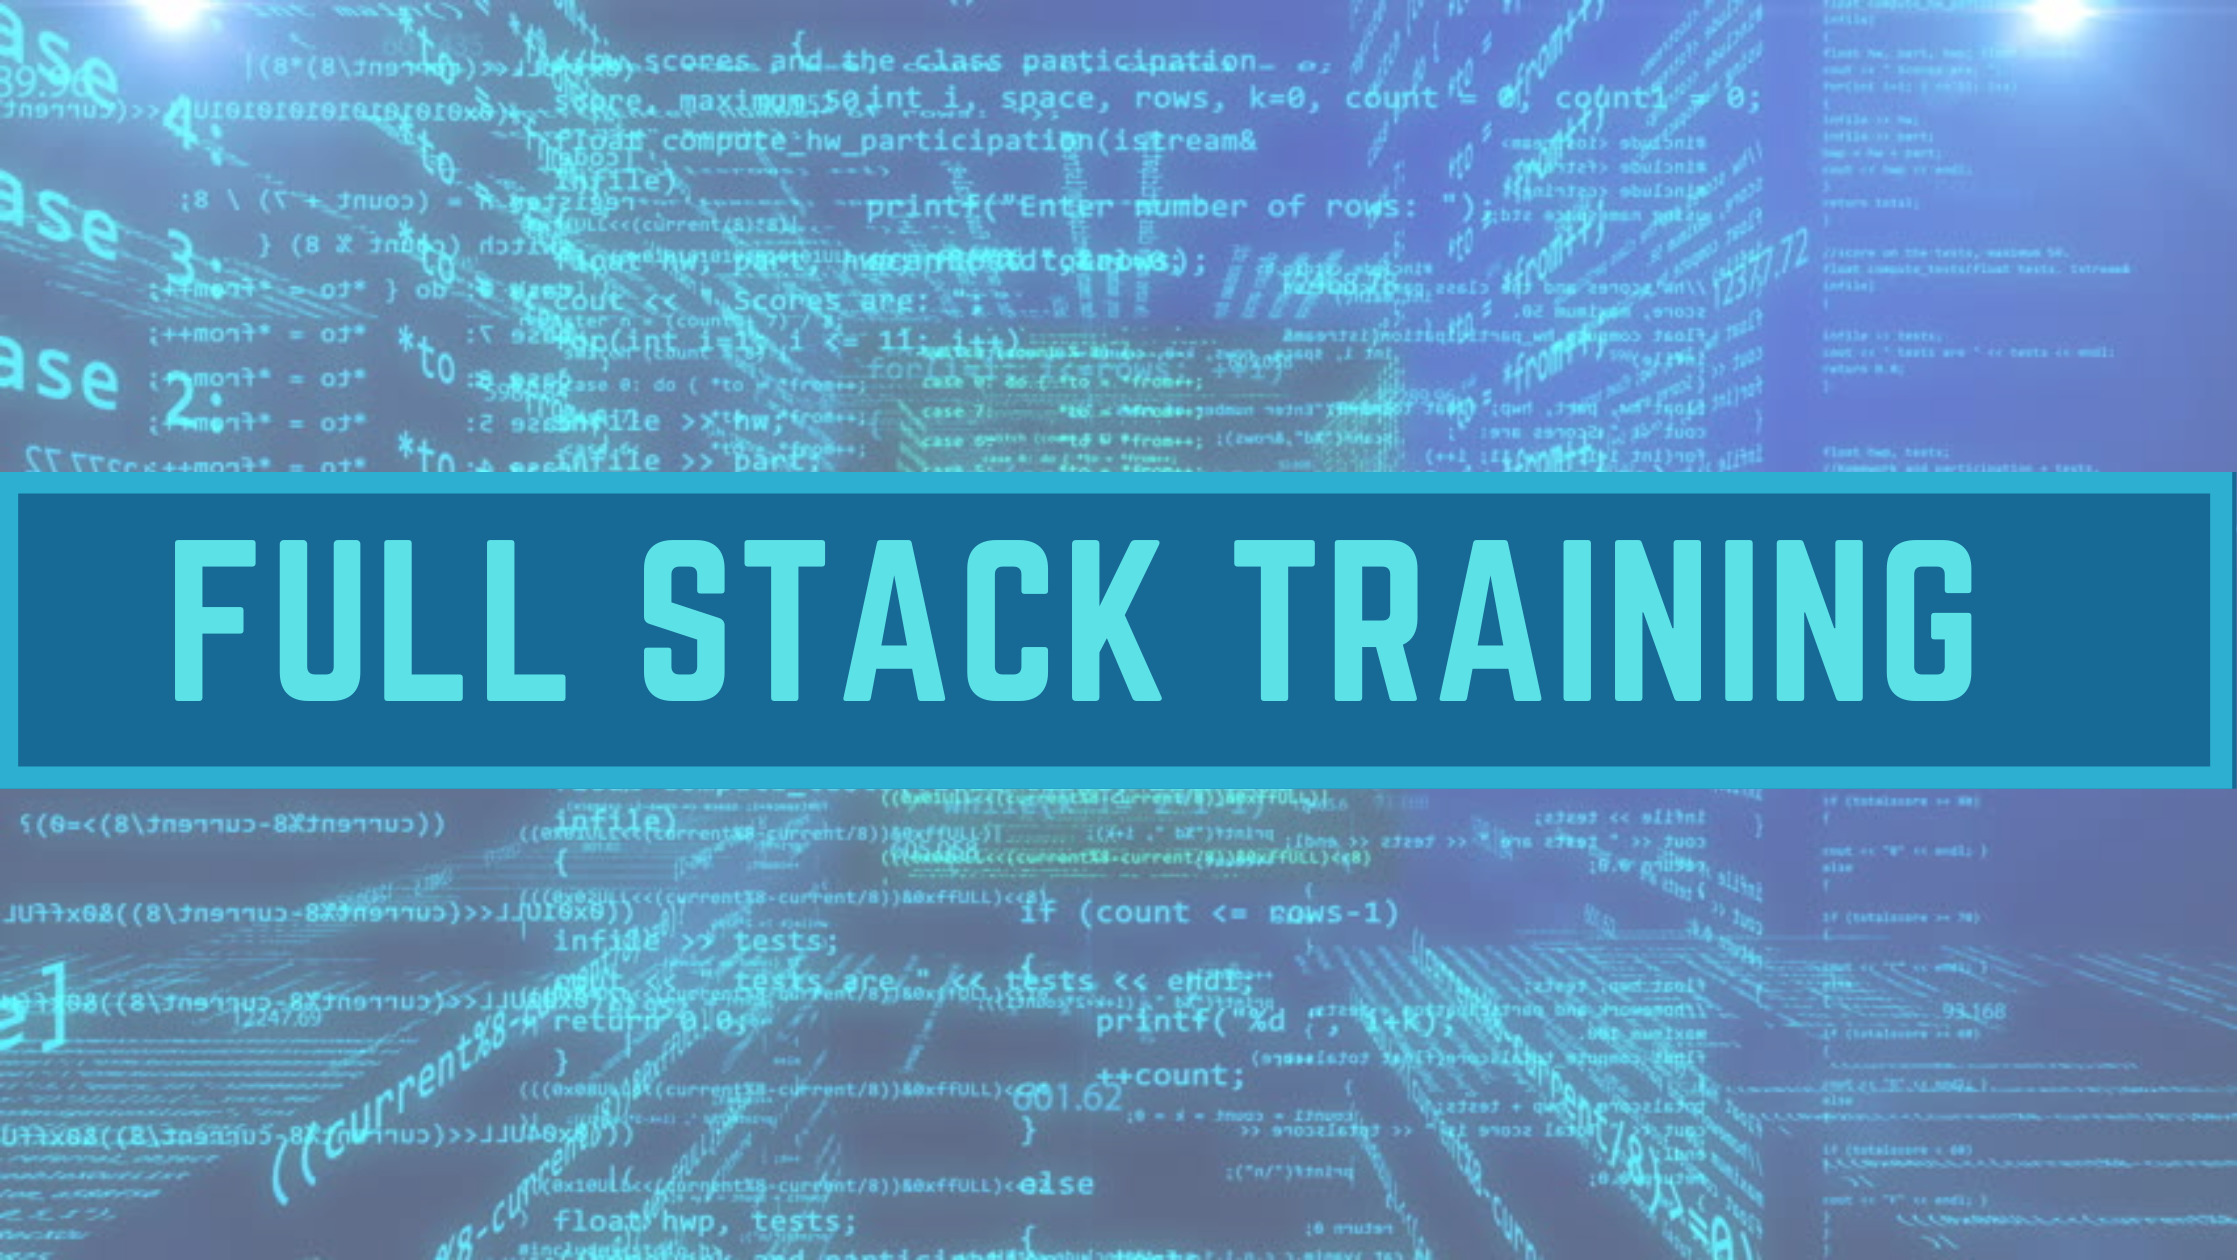 full-stack-training-background.jpeg